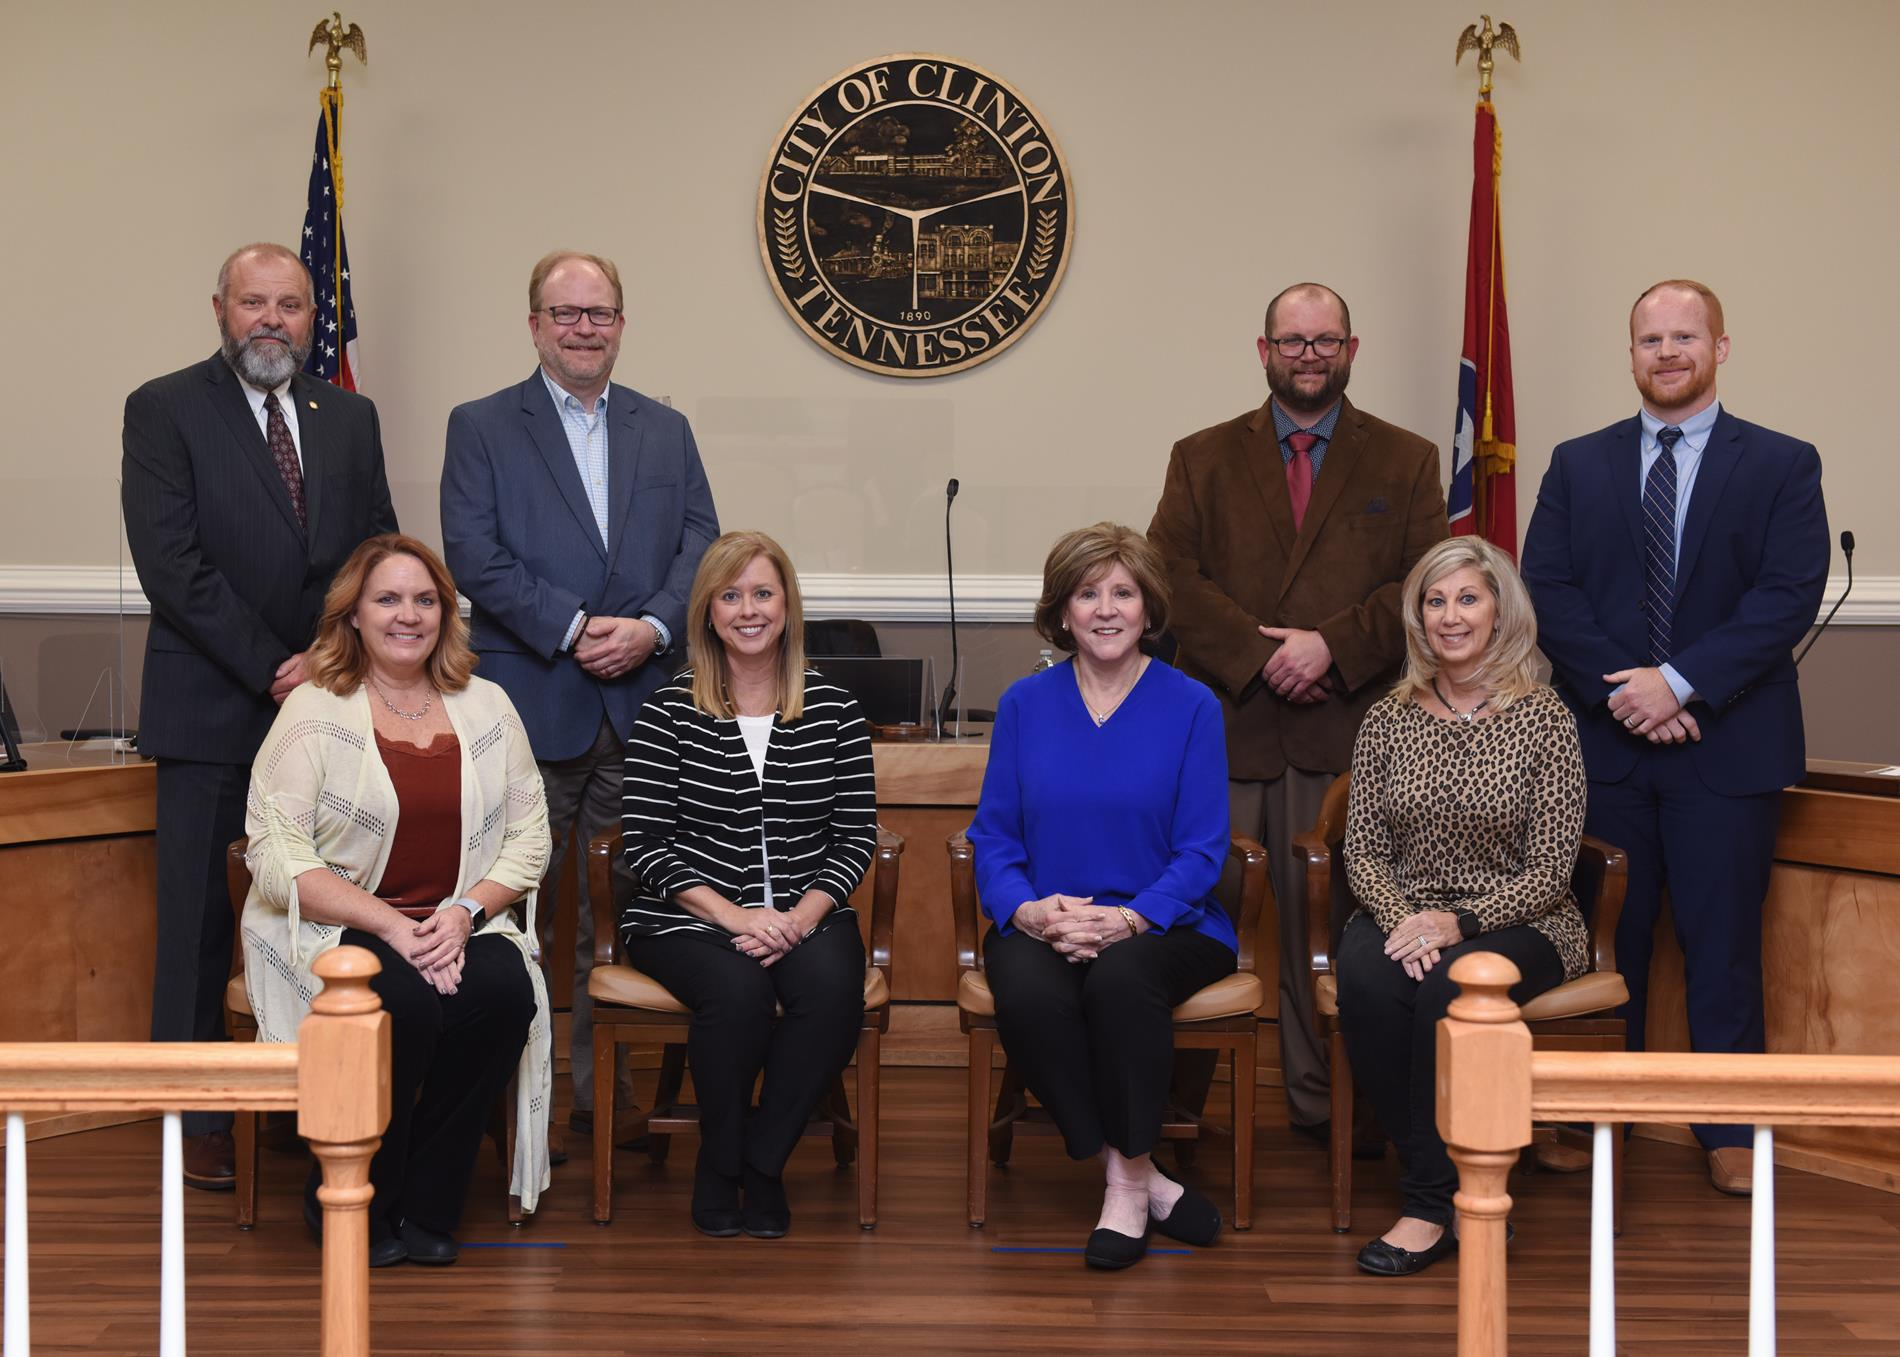 Full School Board with Kelly Johnson, Director of Schools and Kim Martin, Board Secretary